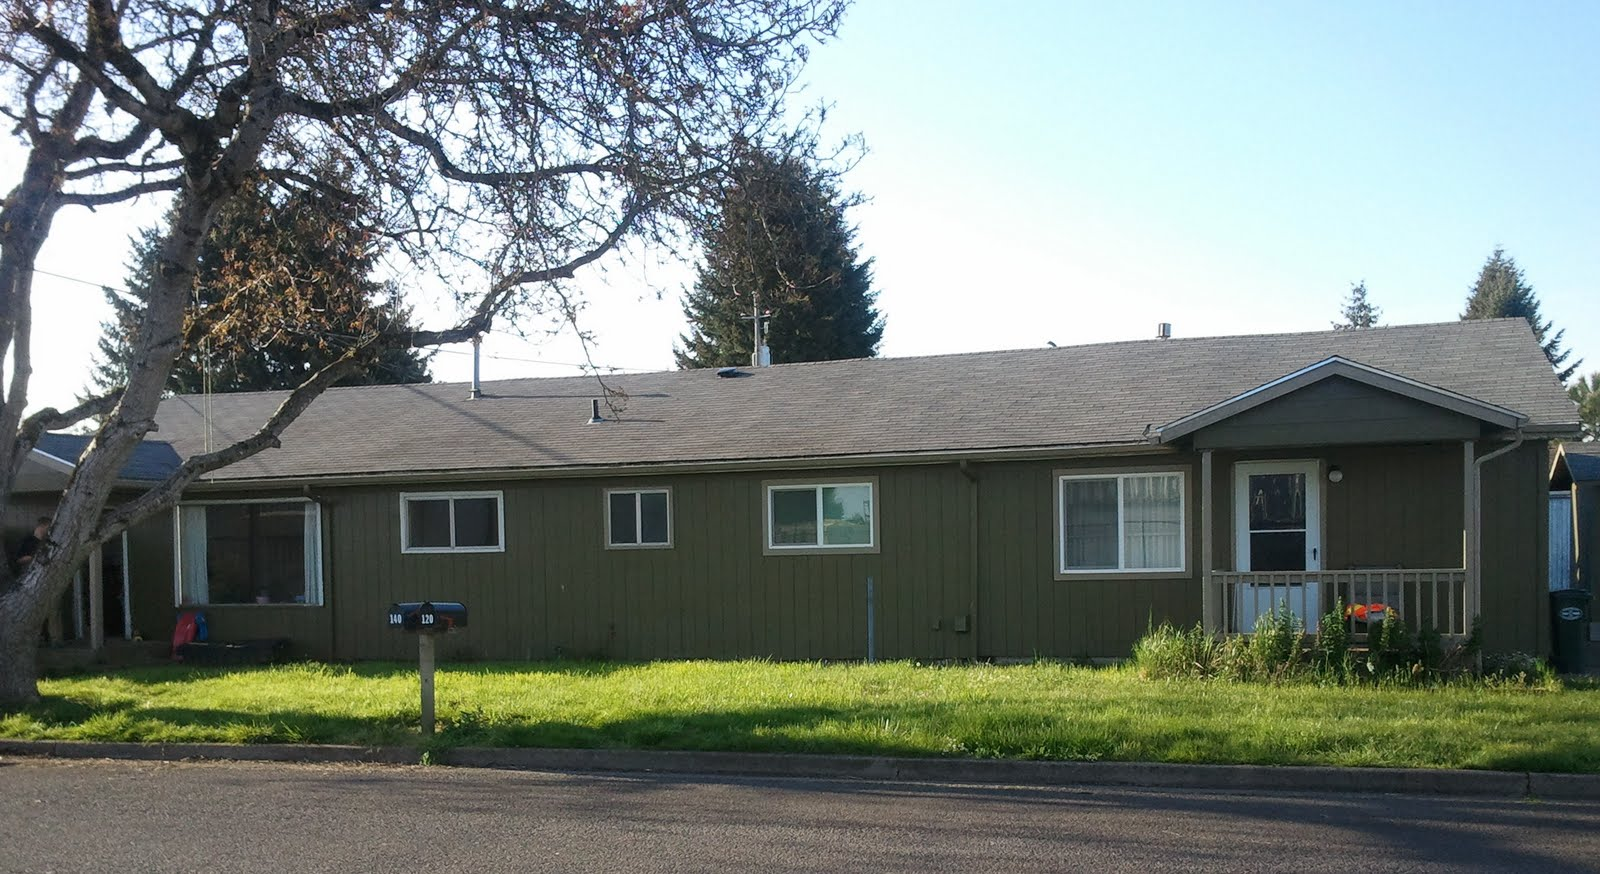 Real Estate Information Waiting For You 2 Bedroom 1 Bath Duplex For Rent In Junction City Oregon